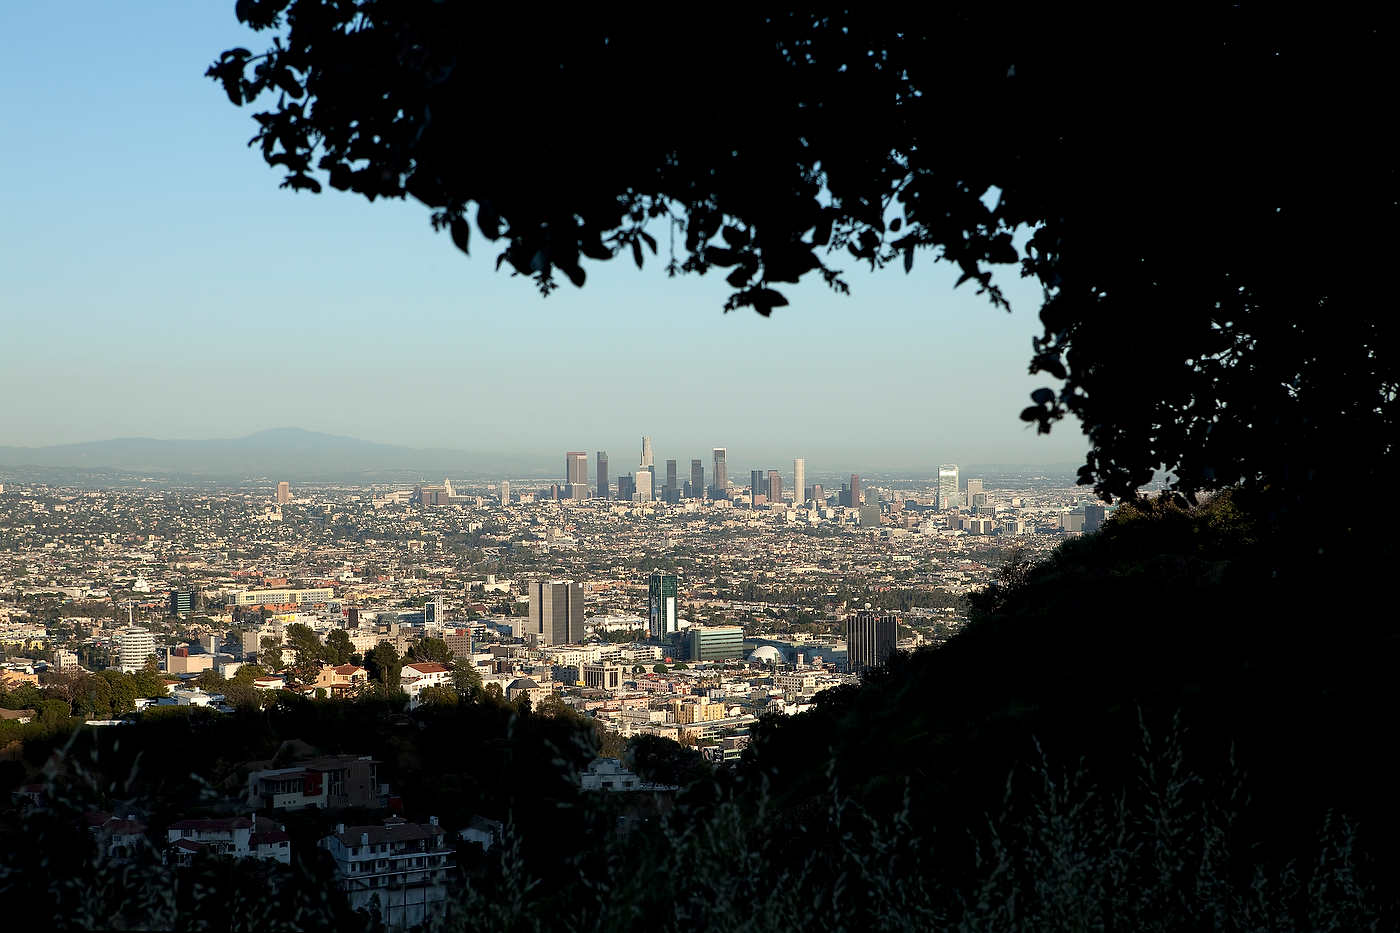 Los Angeles seen from the Hollywood Hills.